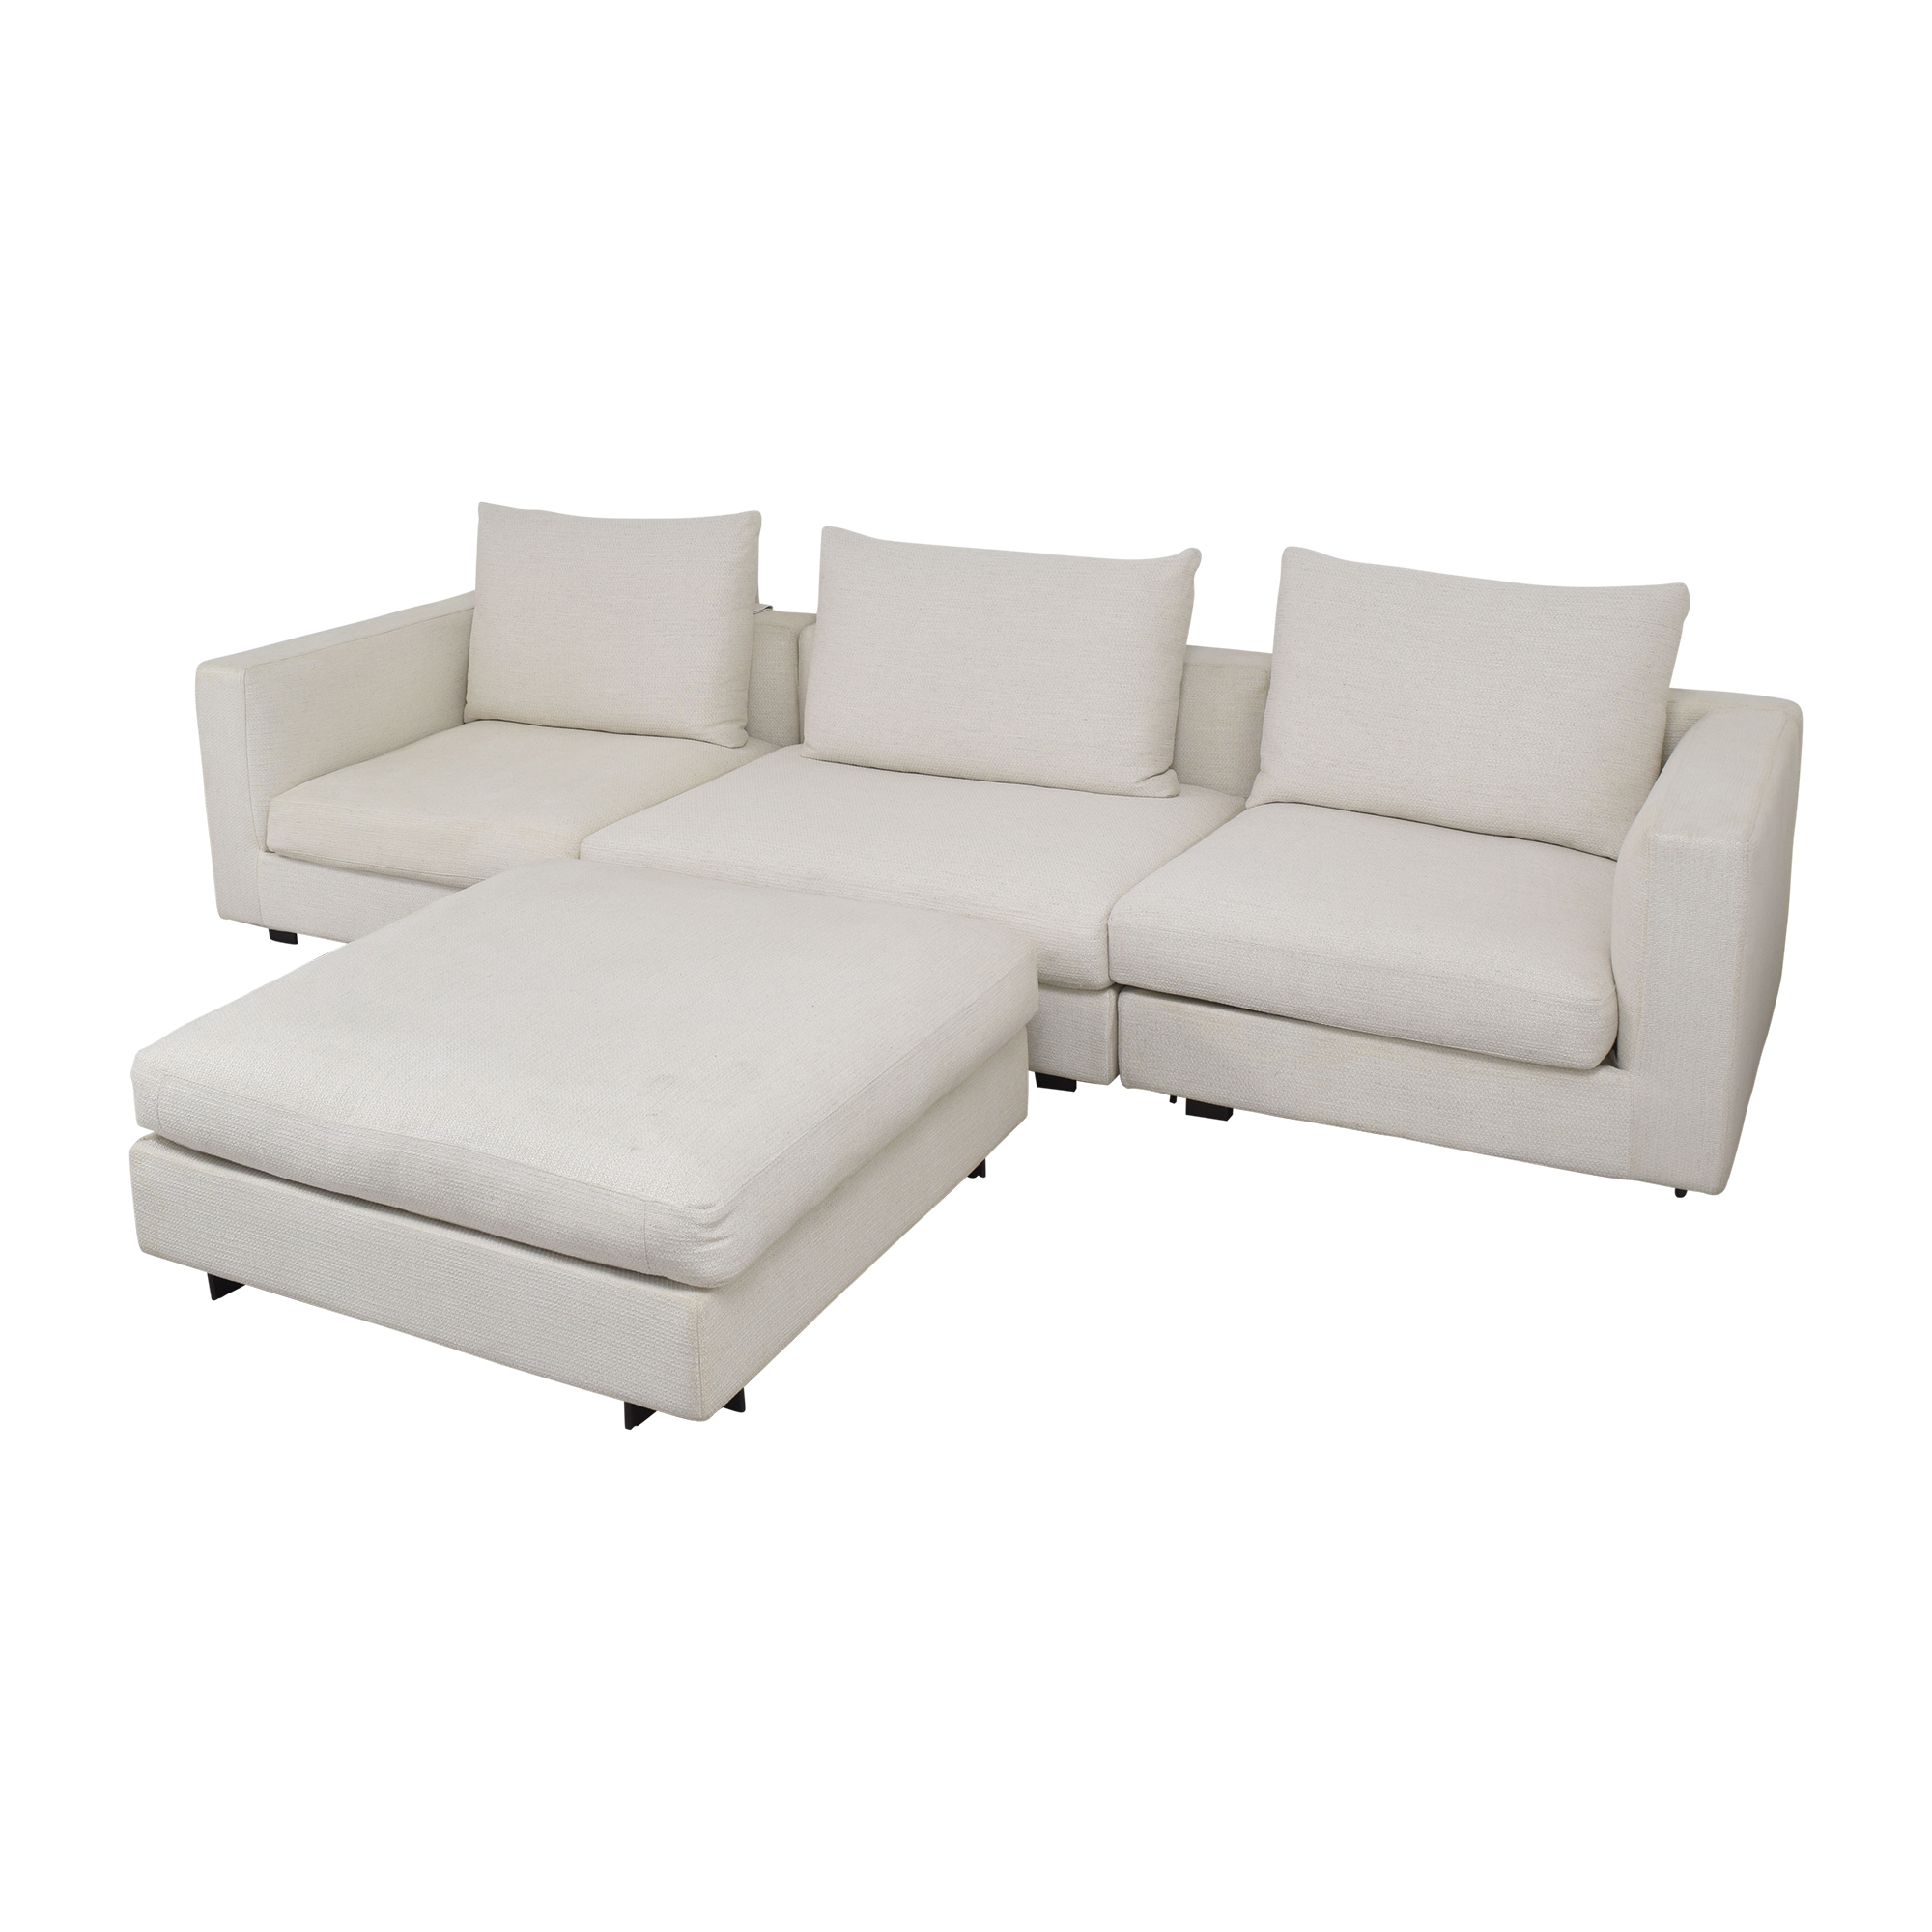 Camerich Camerich Freetown Sectional Sofa with Ottoman nj